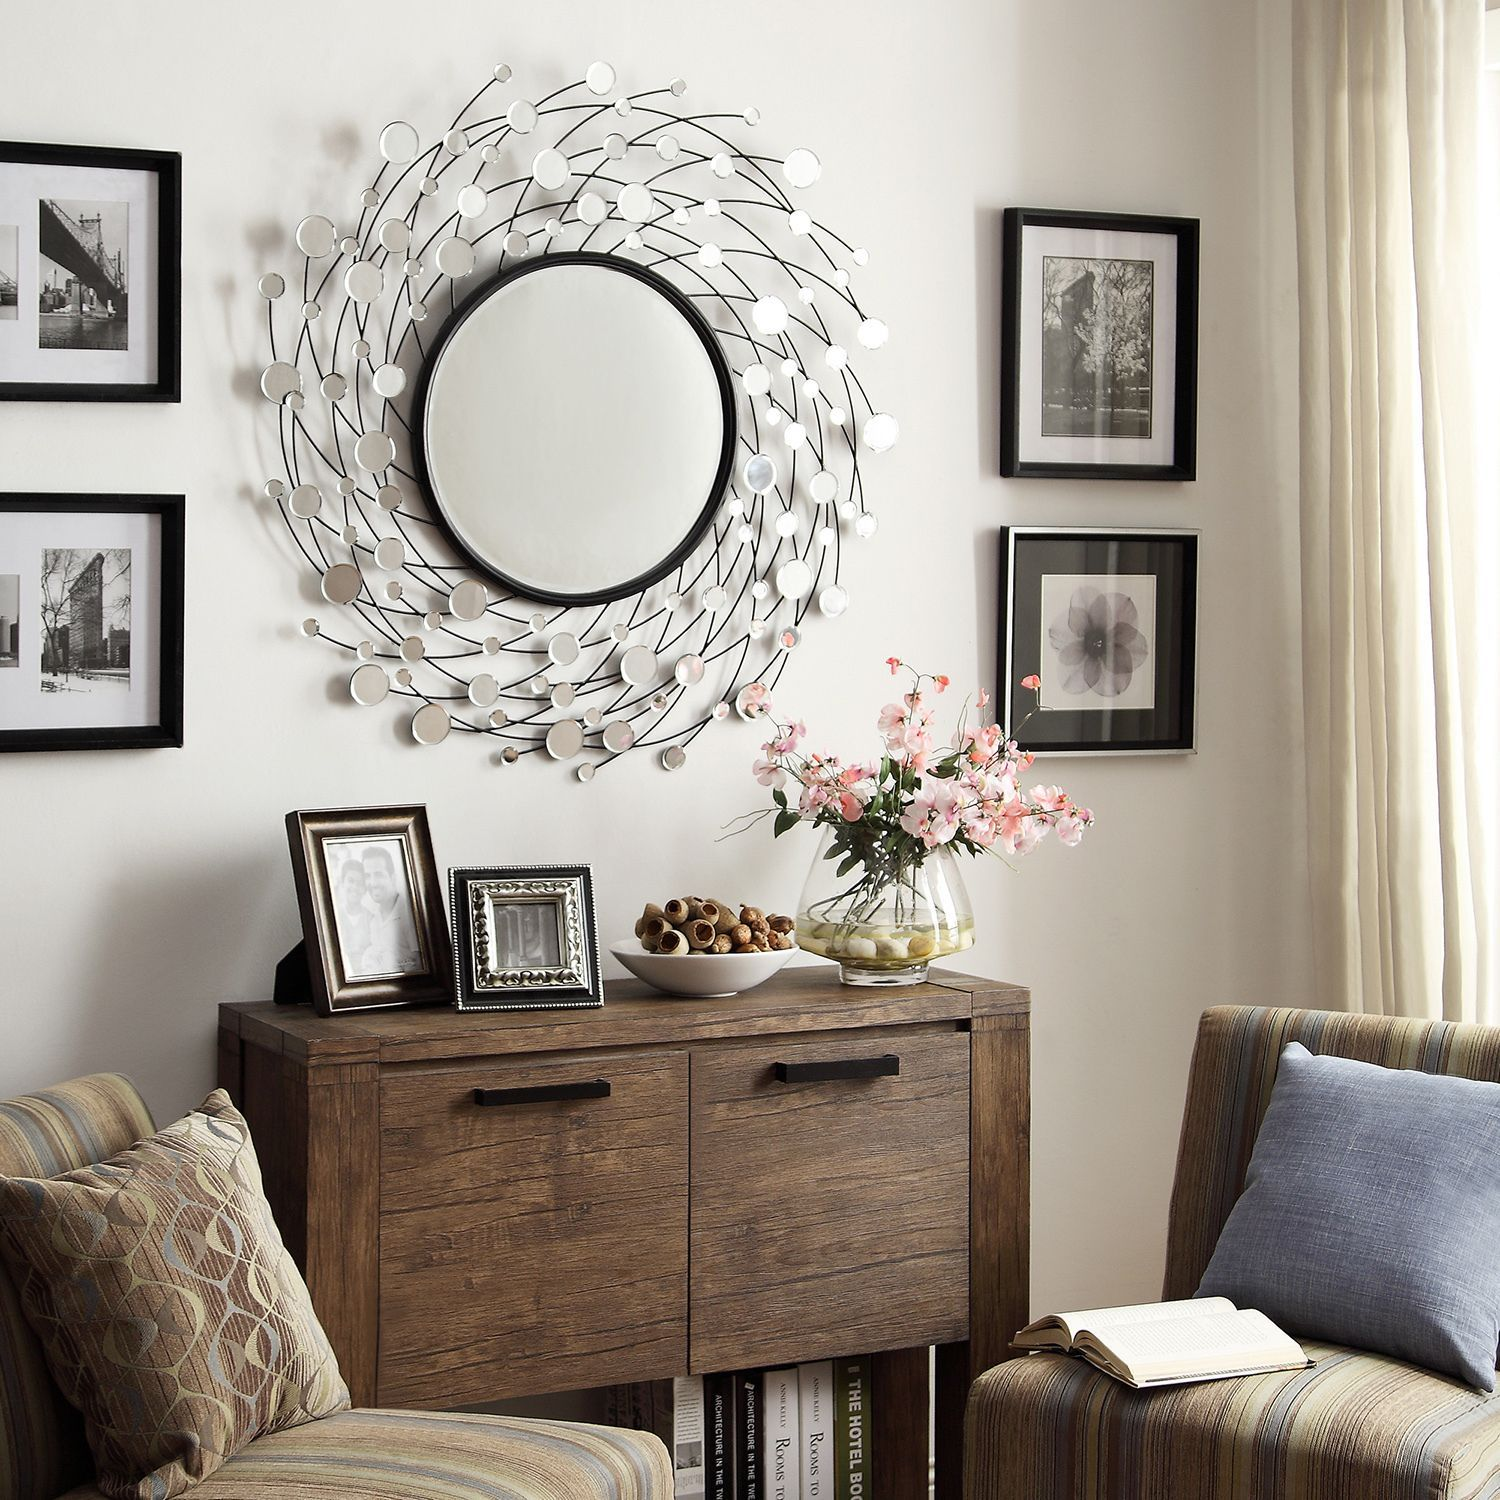 Inspire Q Pollock Spinning Nest Finish Accent Wall Mirror